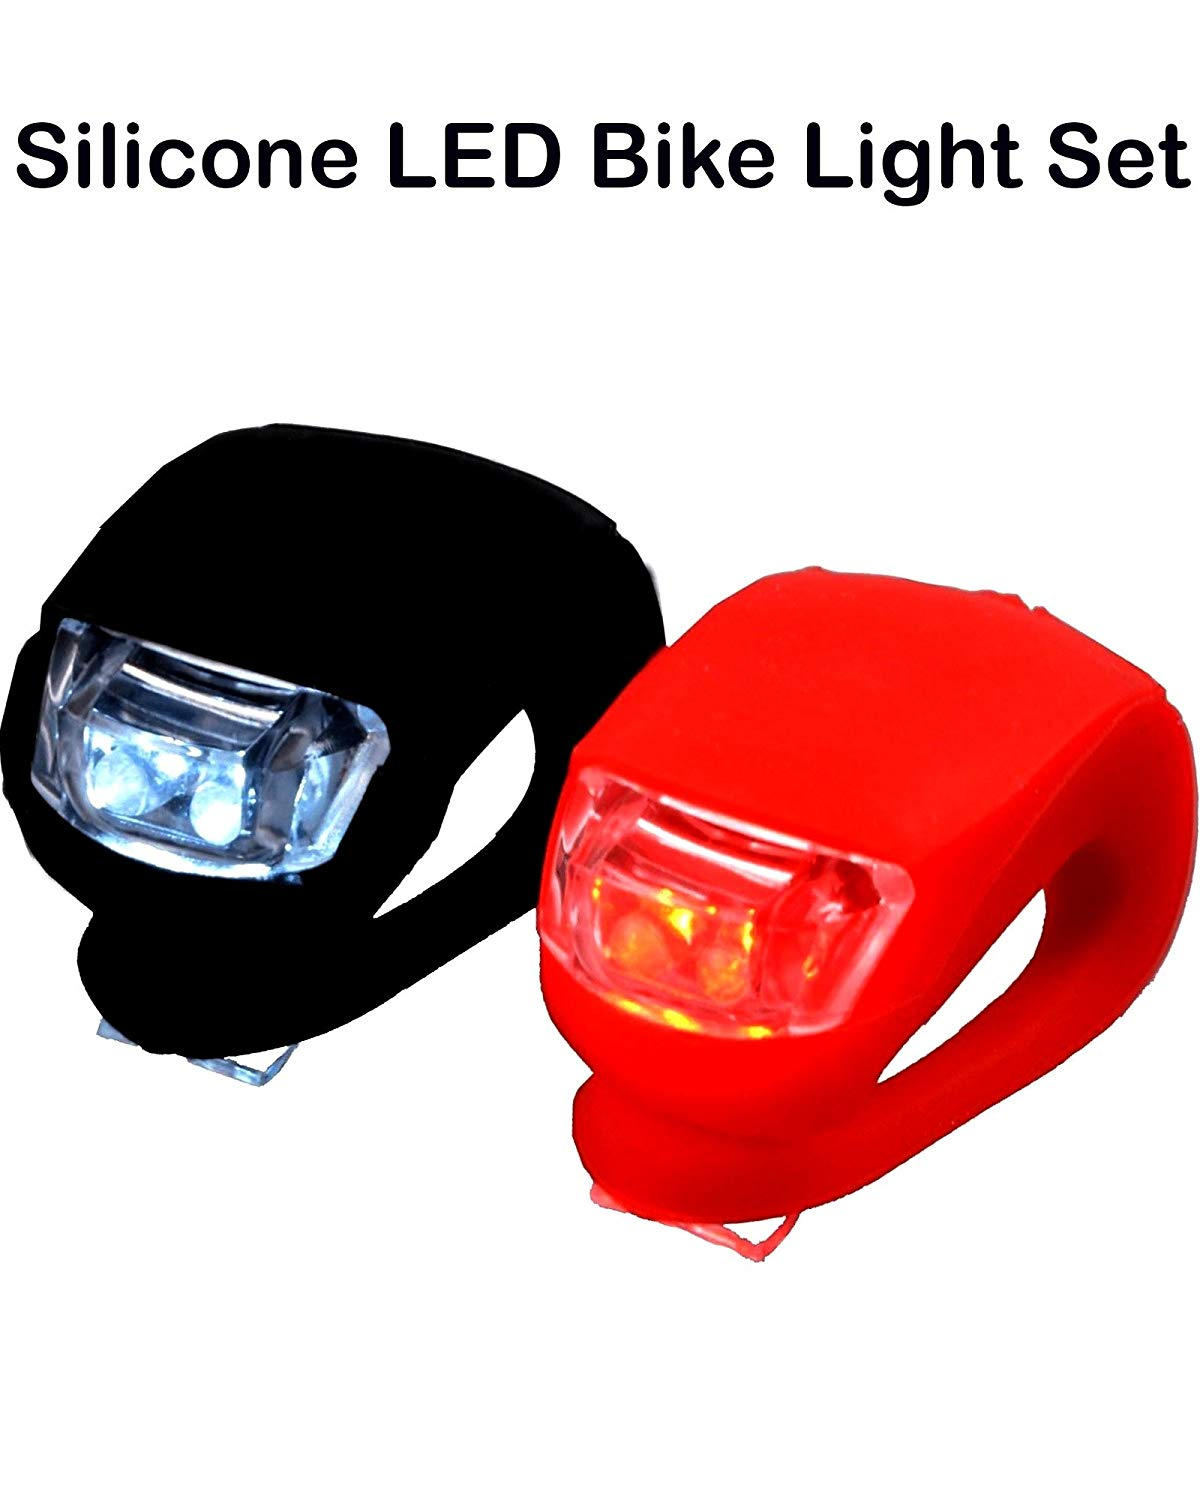 Magic Hub Sport Bicycle Light Front and Rear - Silicone LED Bike Light Set - Bike Headlight and Taillight, Mountain Bike Cycle Safety Lights, 2 Pack